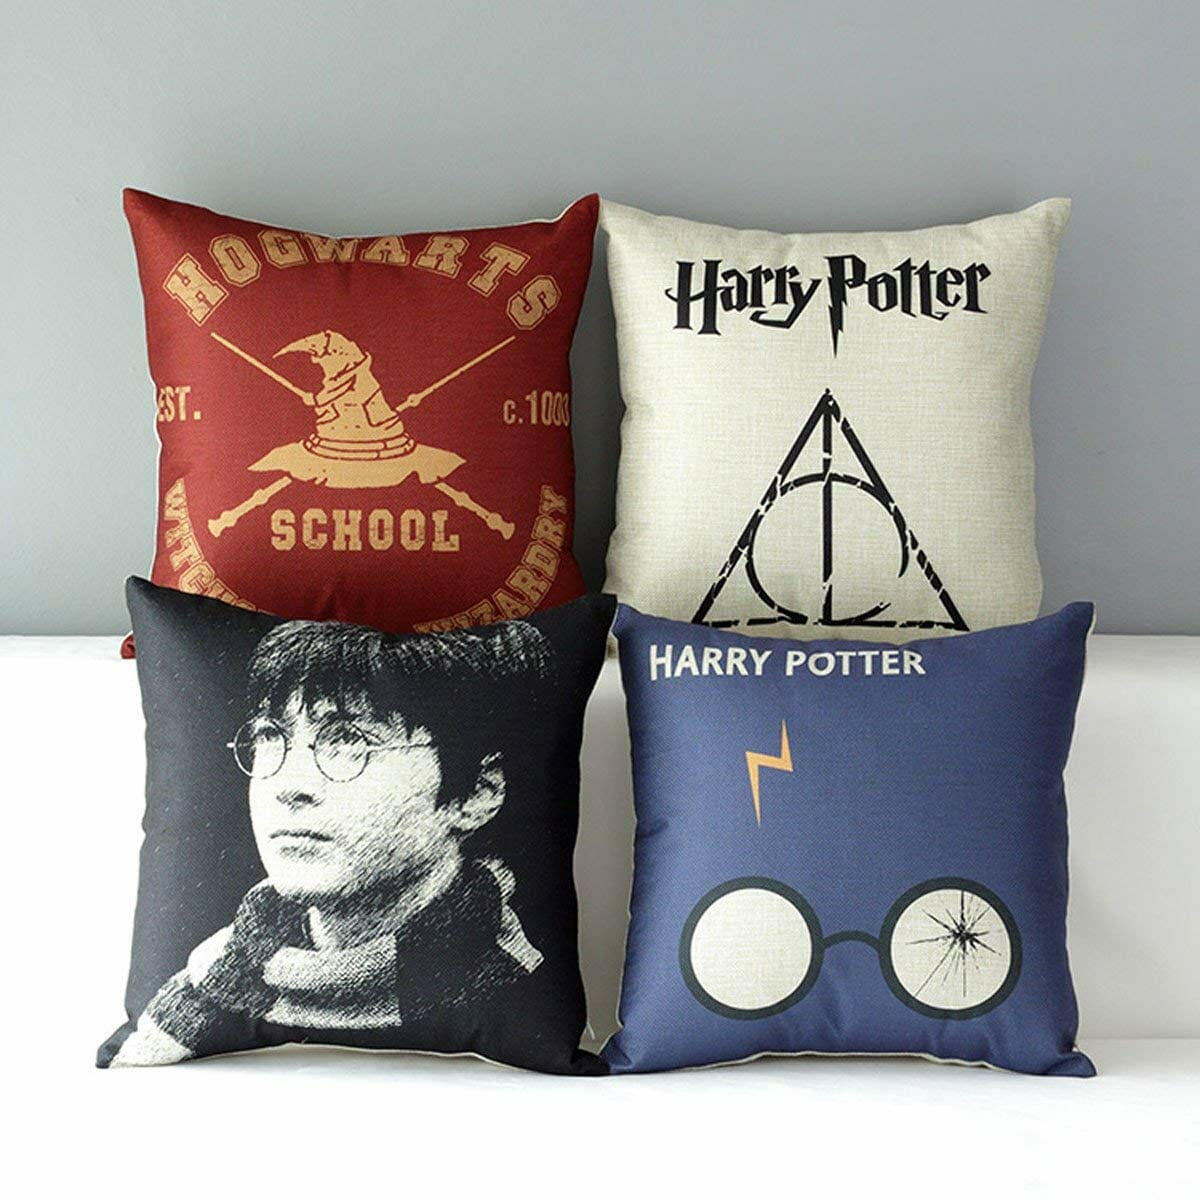 37 Magical Harry Potter Gifts For Fans From 9 To 99 In